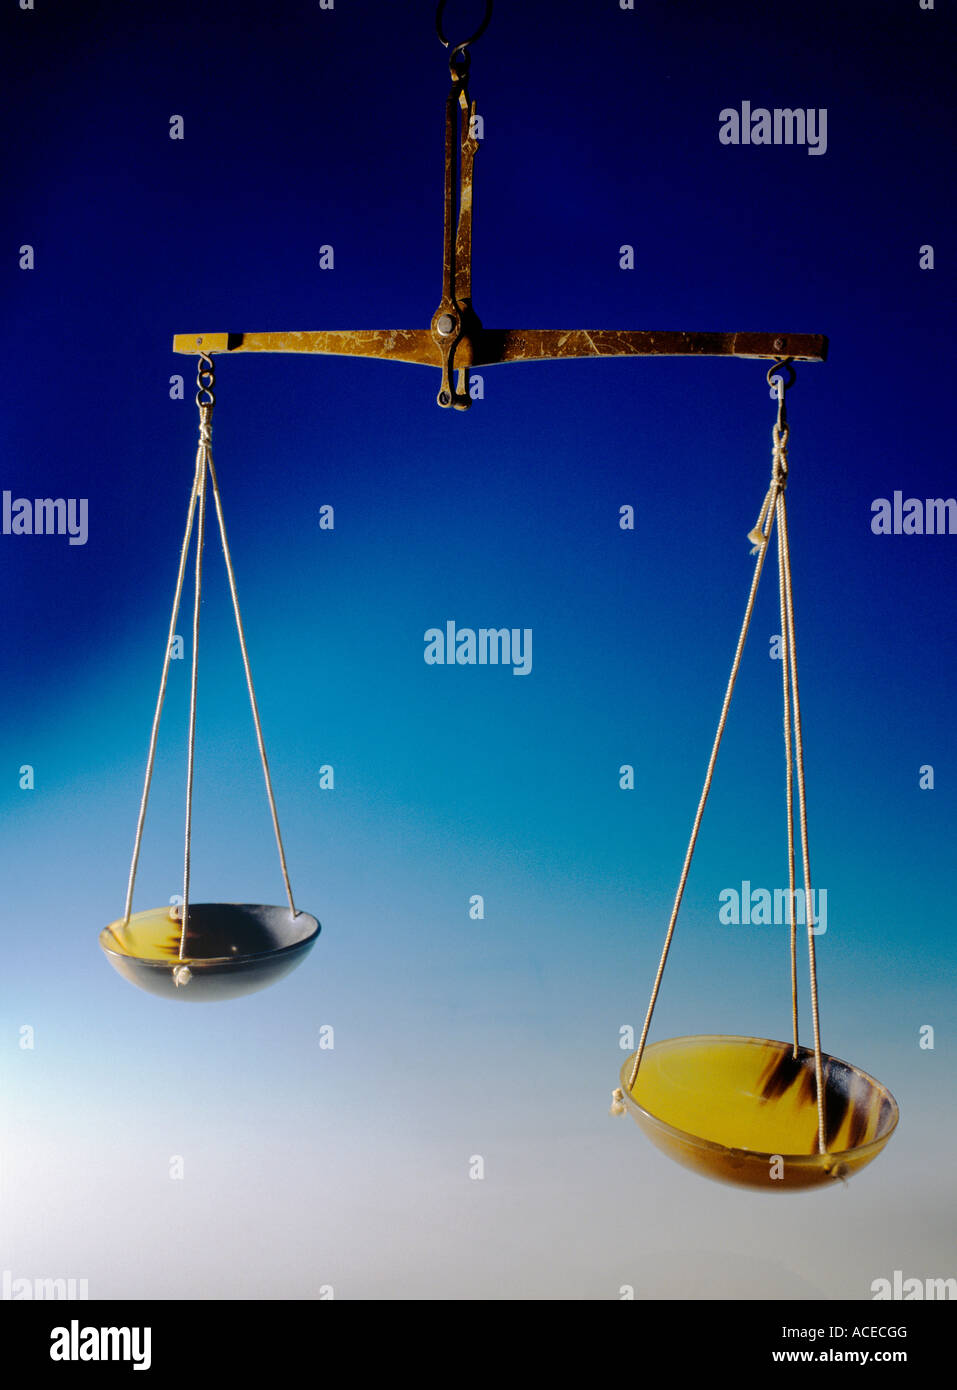 Antique Scales Stock Photos & Antique Scales Stock Images - Alamy